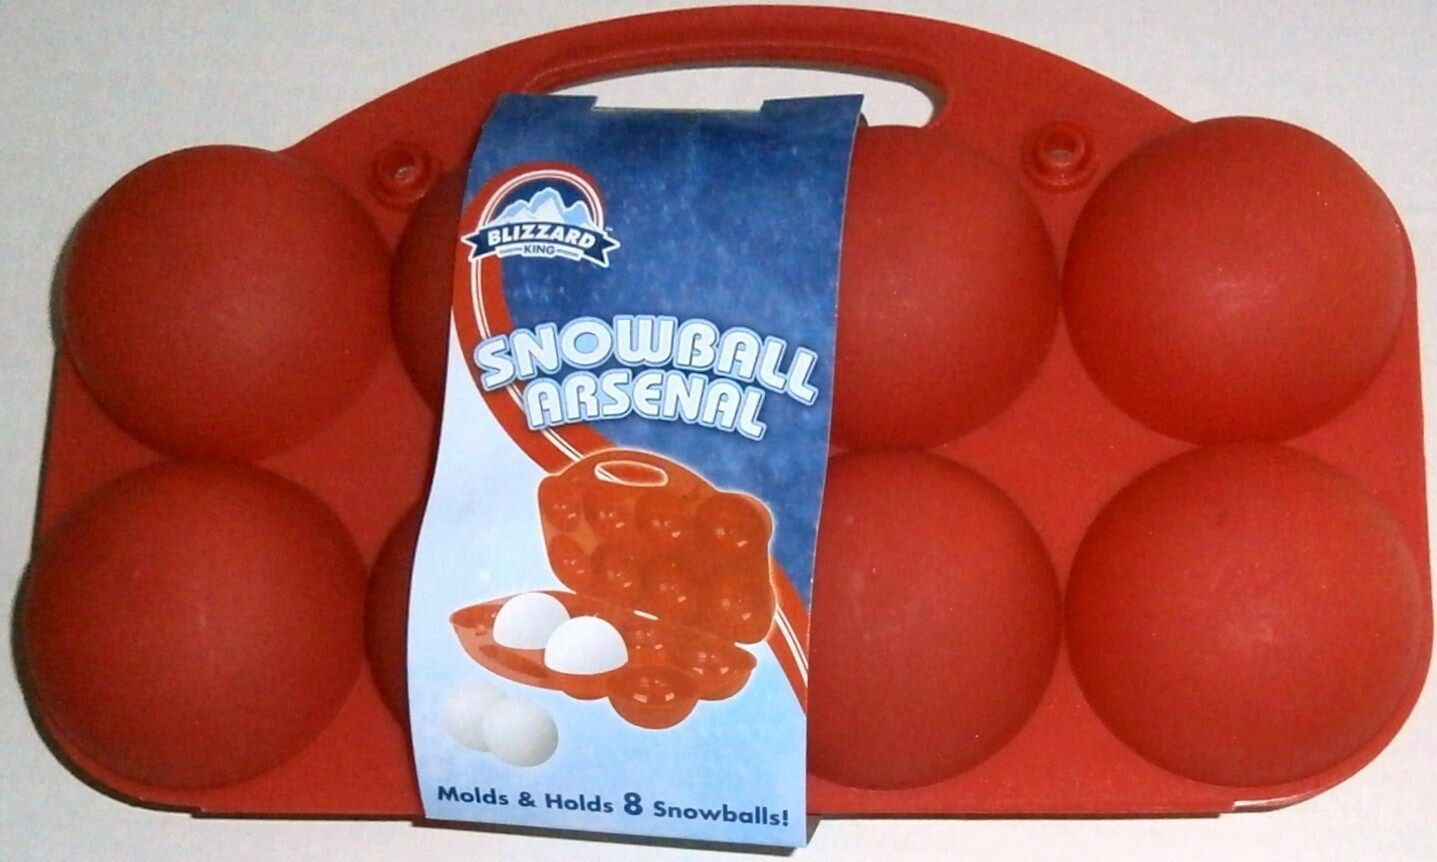 Blizzard Snowball Arsenal Molds and Holds 8 Snowballs Purple